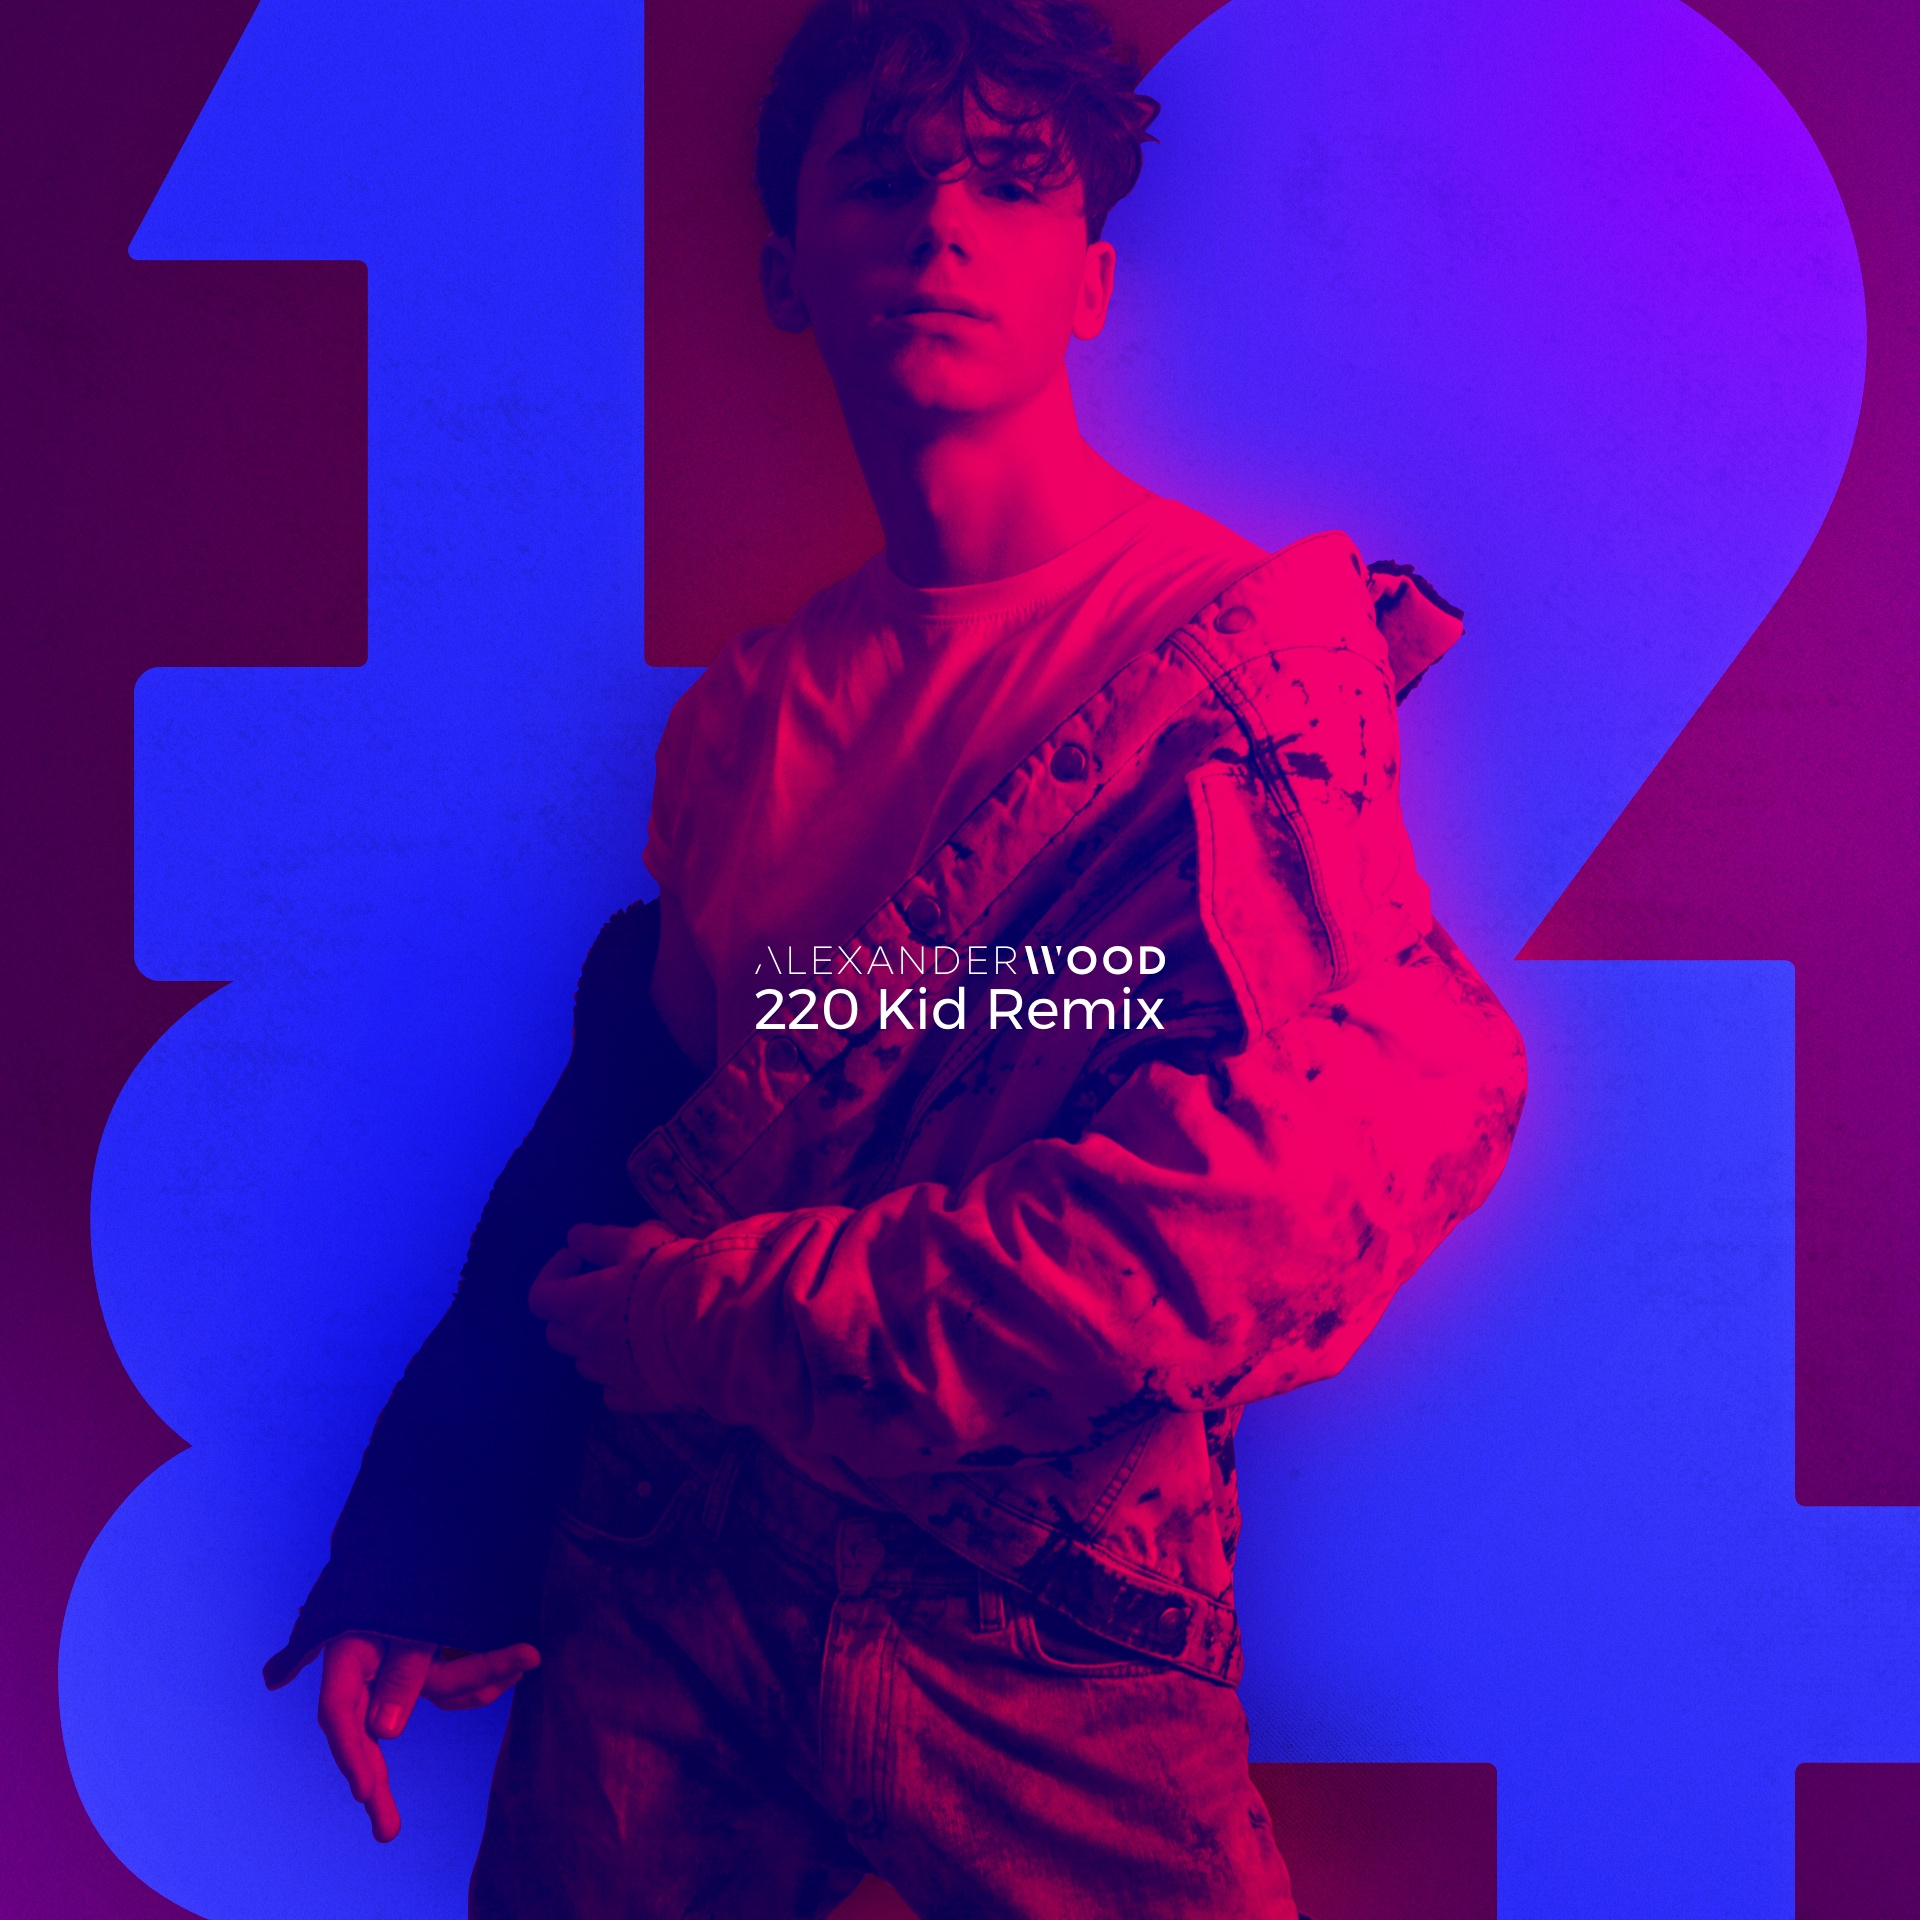 From the Nation of France – 'Alexander Wood' hits the official UK Music Week Commercial Pop Charts with the KID 220 Remix of his forthcoming single '1984'